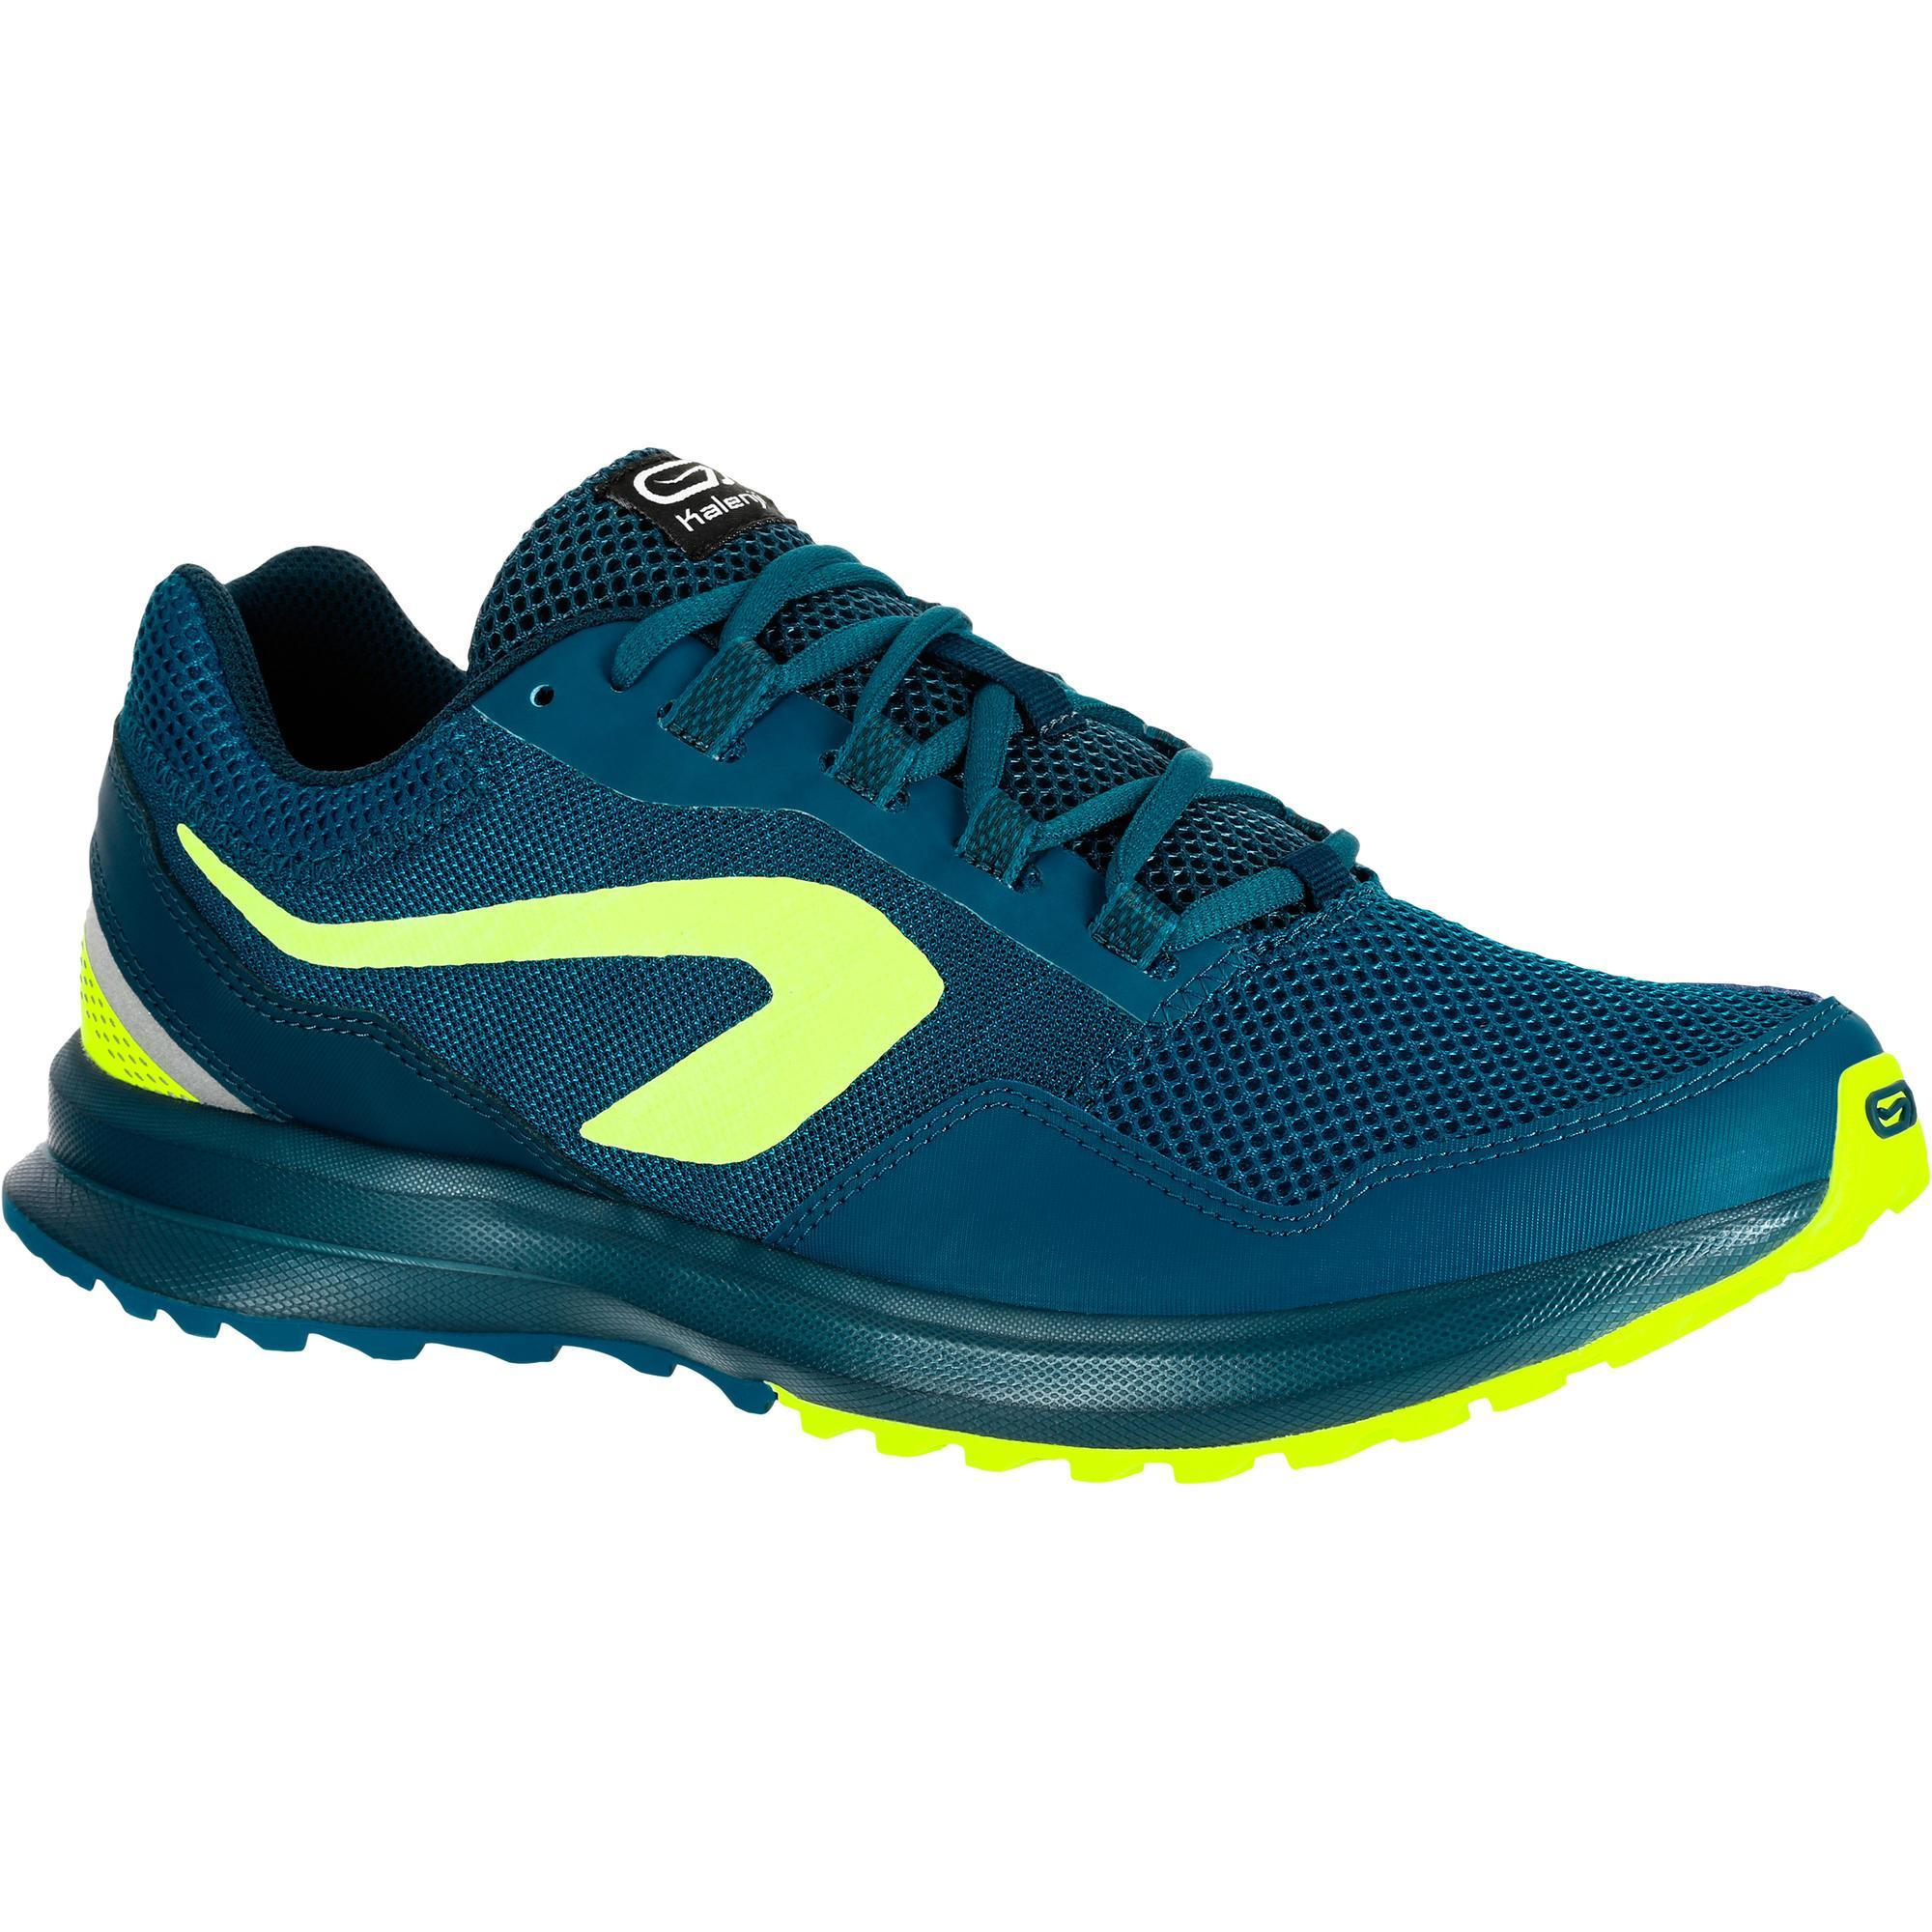 new arrival 1323d 0cdd8 Comprar zapatillas de trail running   Decathlon